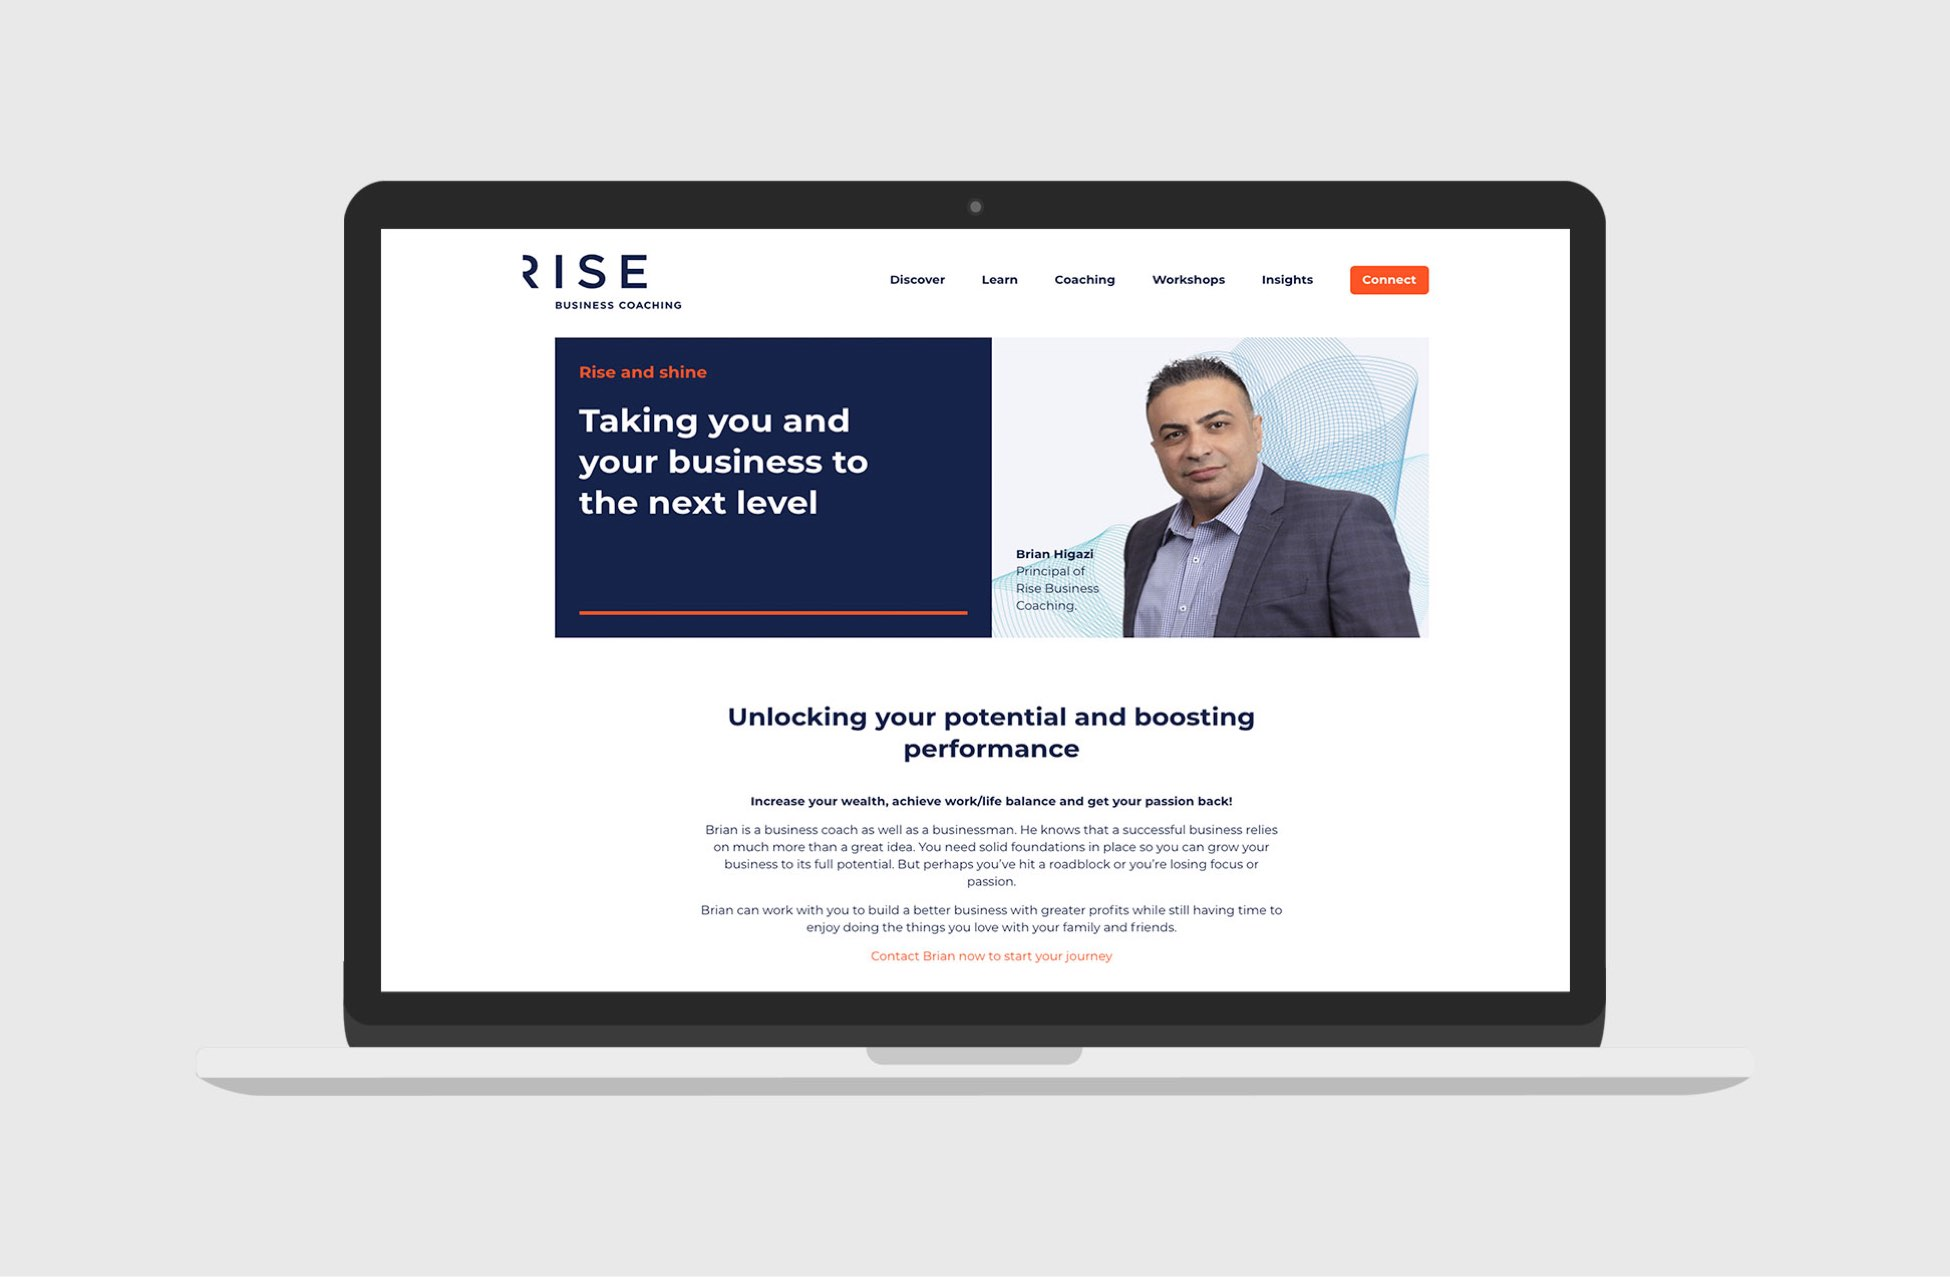 Rise Business Coaching website